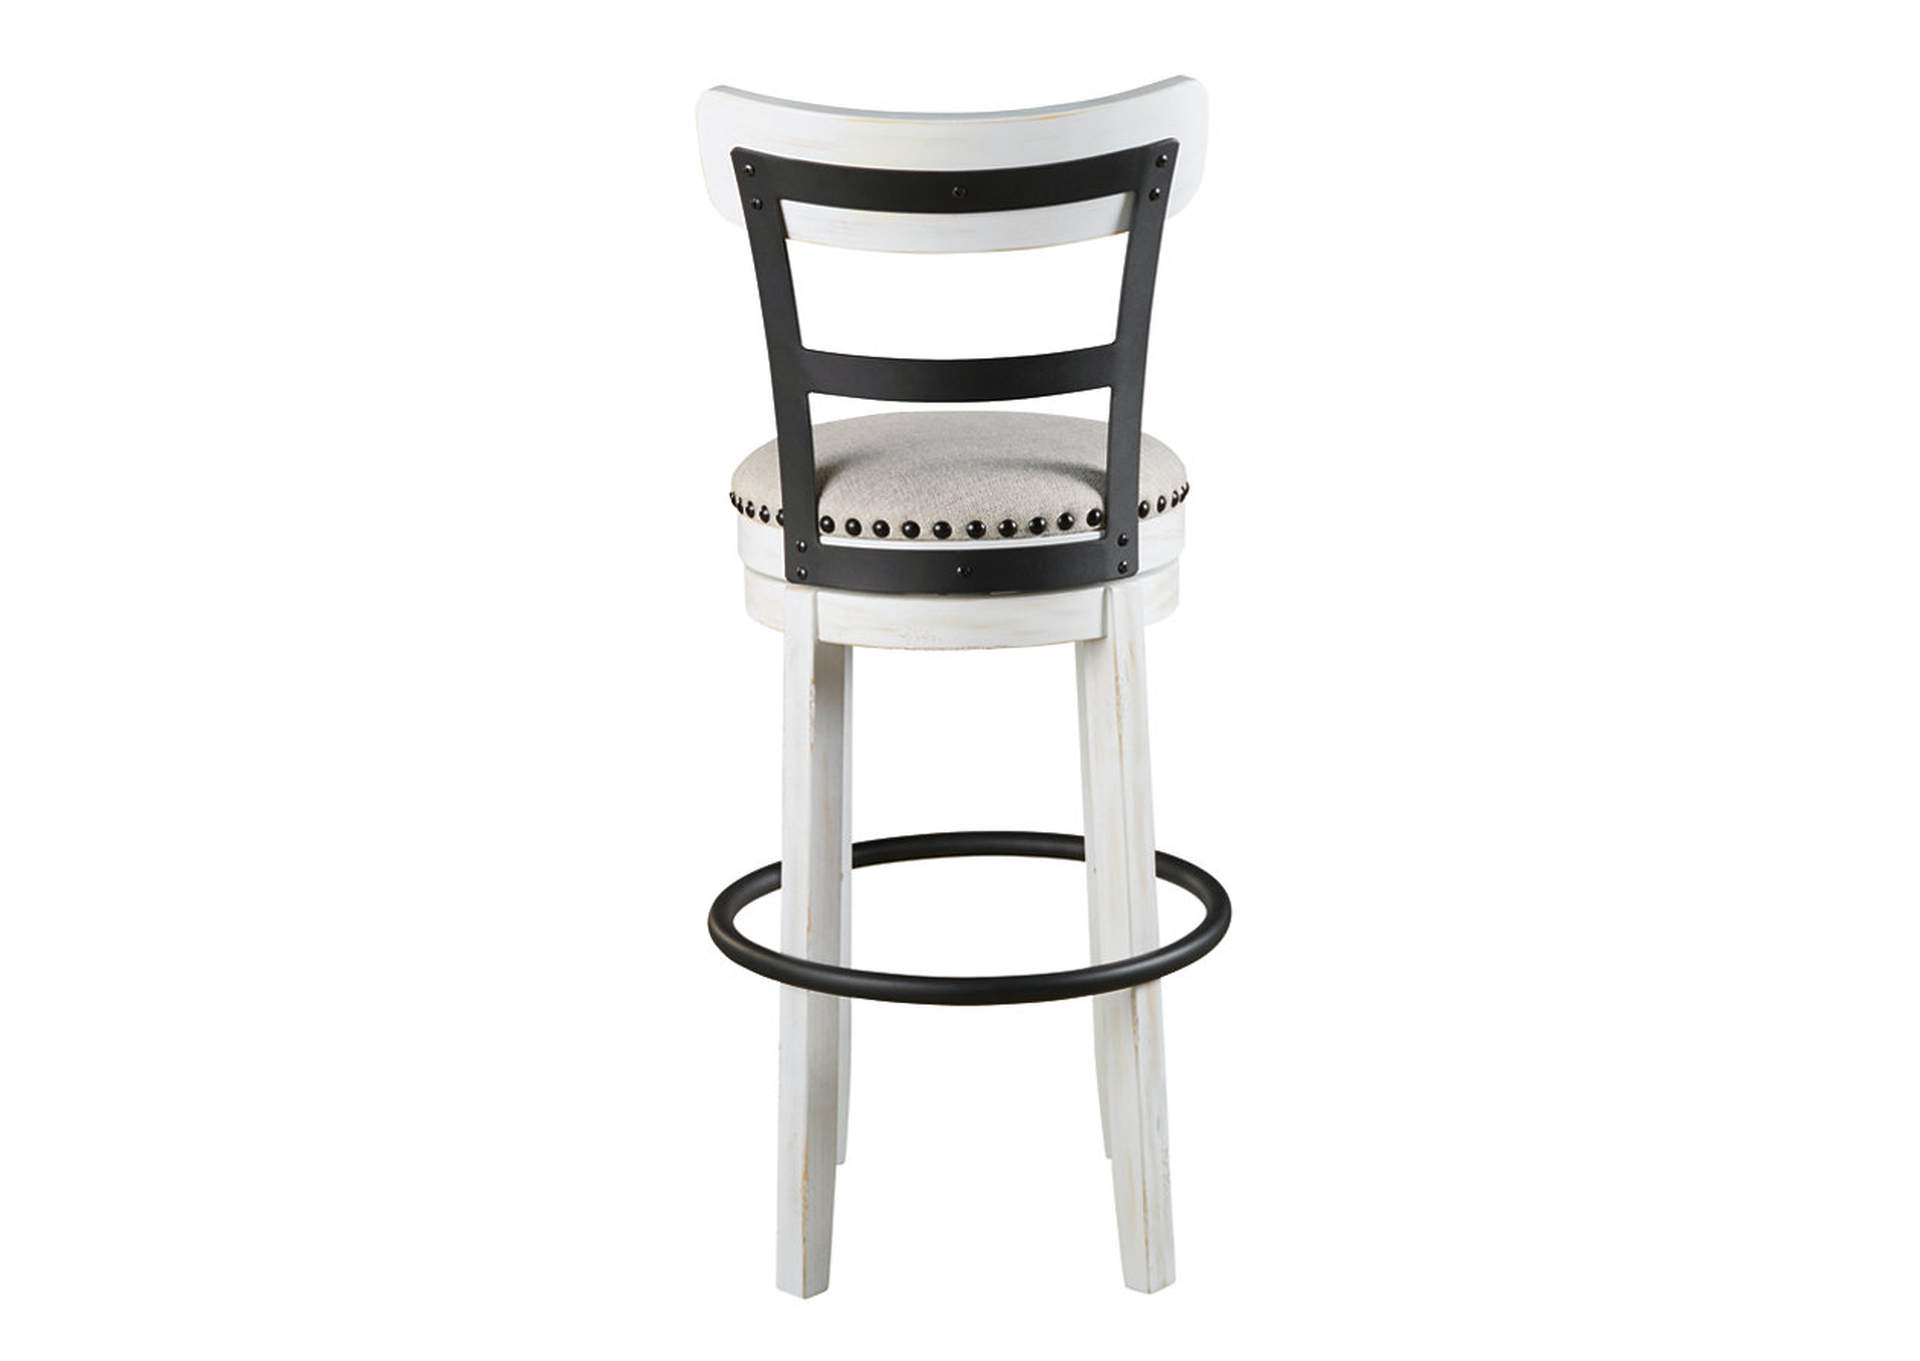 Stupendous Ivan Smith Valebeck White Tall Upholstered Swivel Bar Stool Bralicious Painted Fabric Chair Ideas Braliciousco